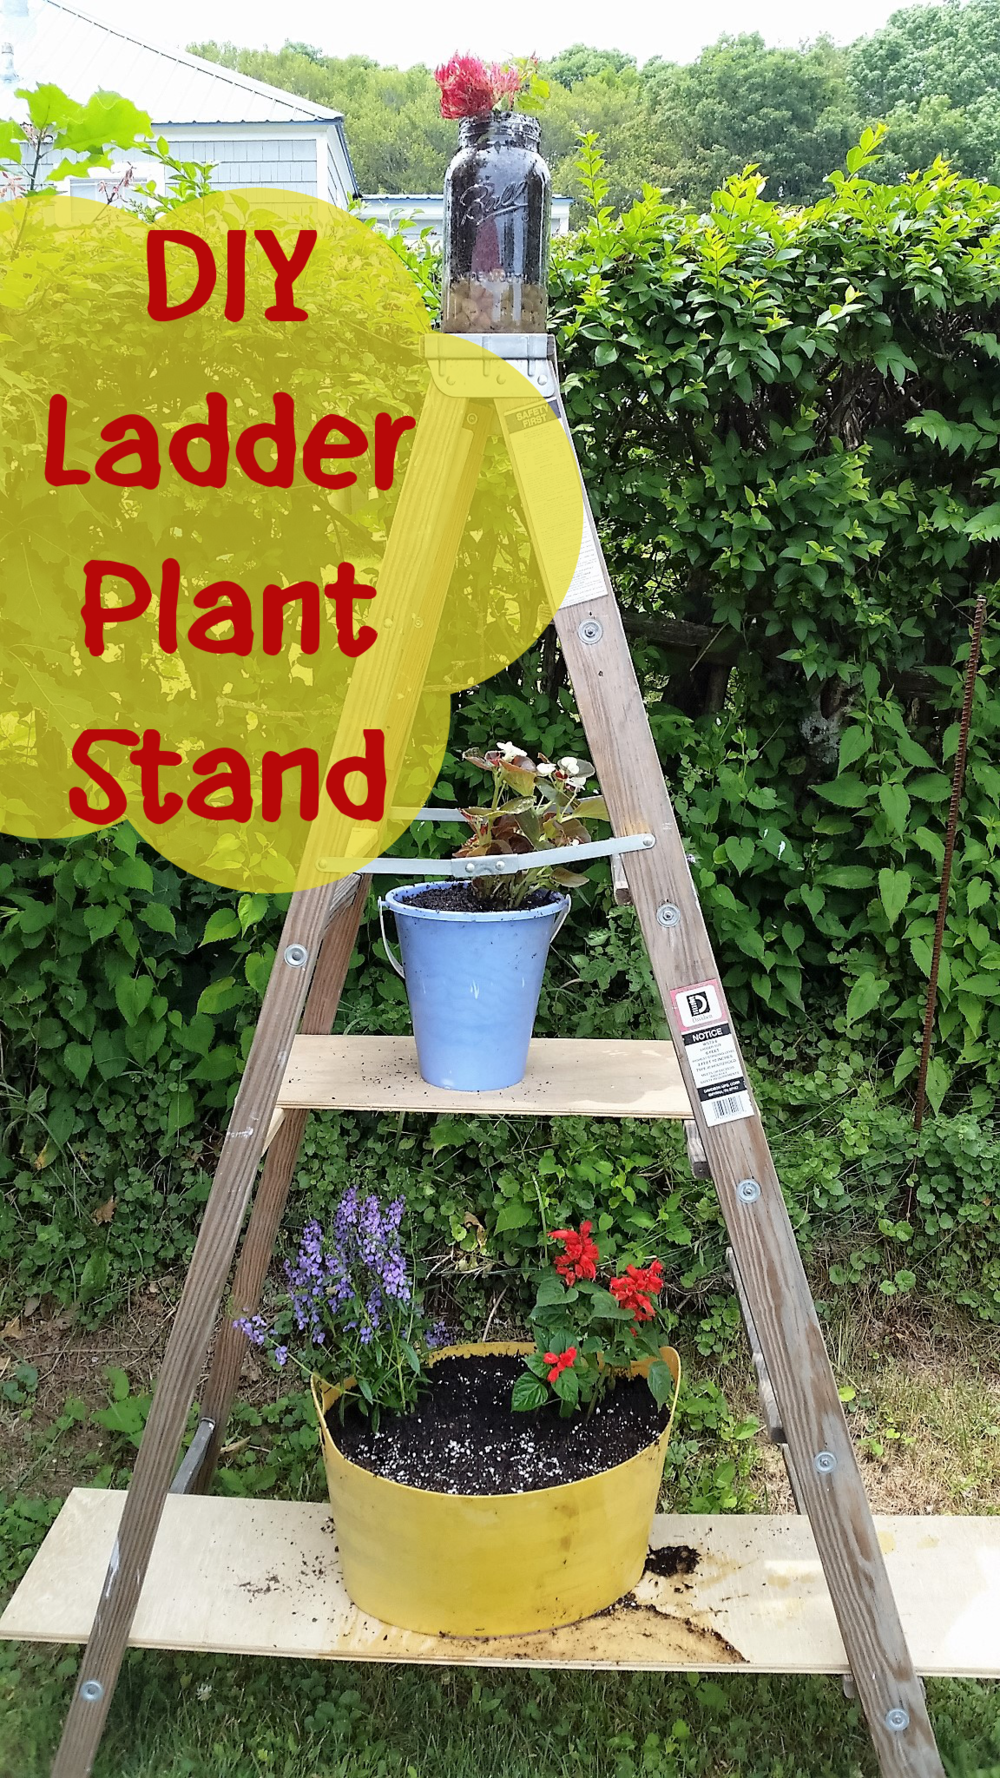 Diy Ladder Plant Stand Whimsy Scribble